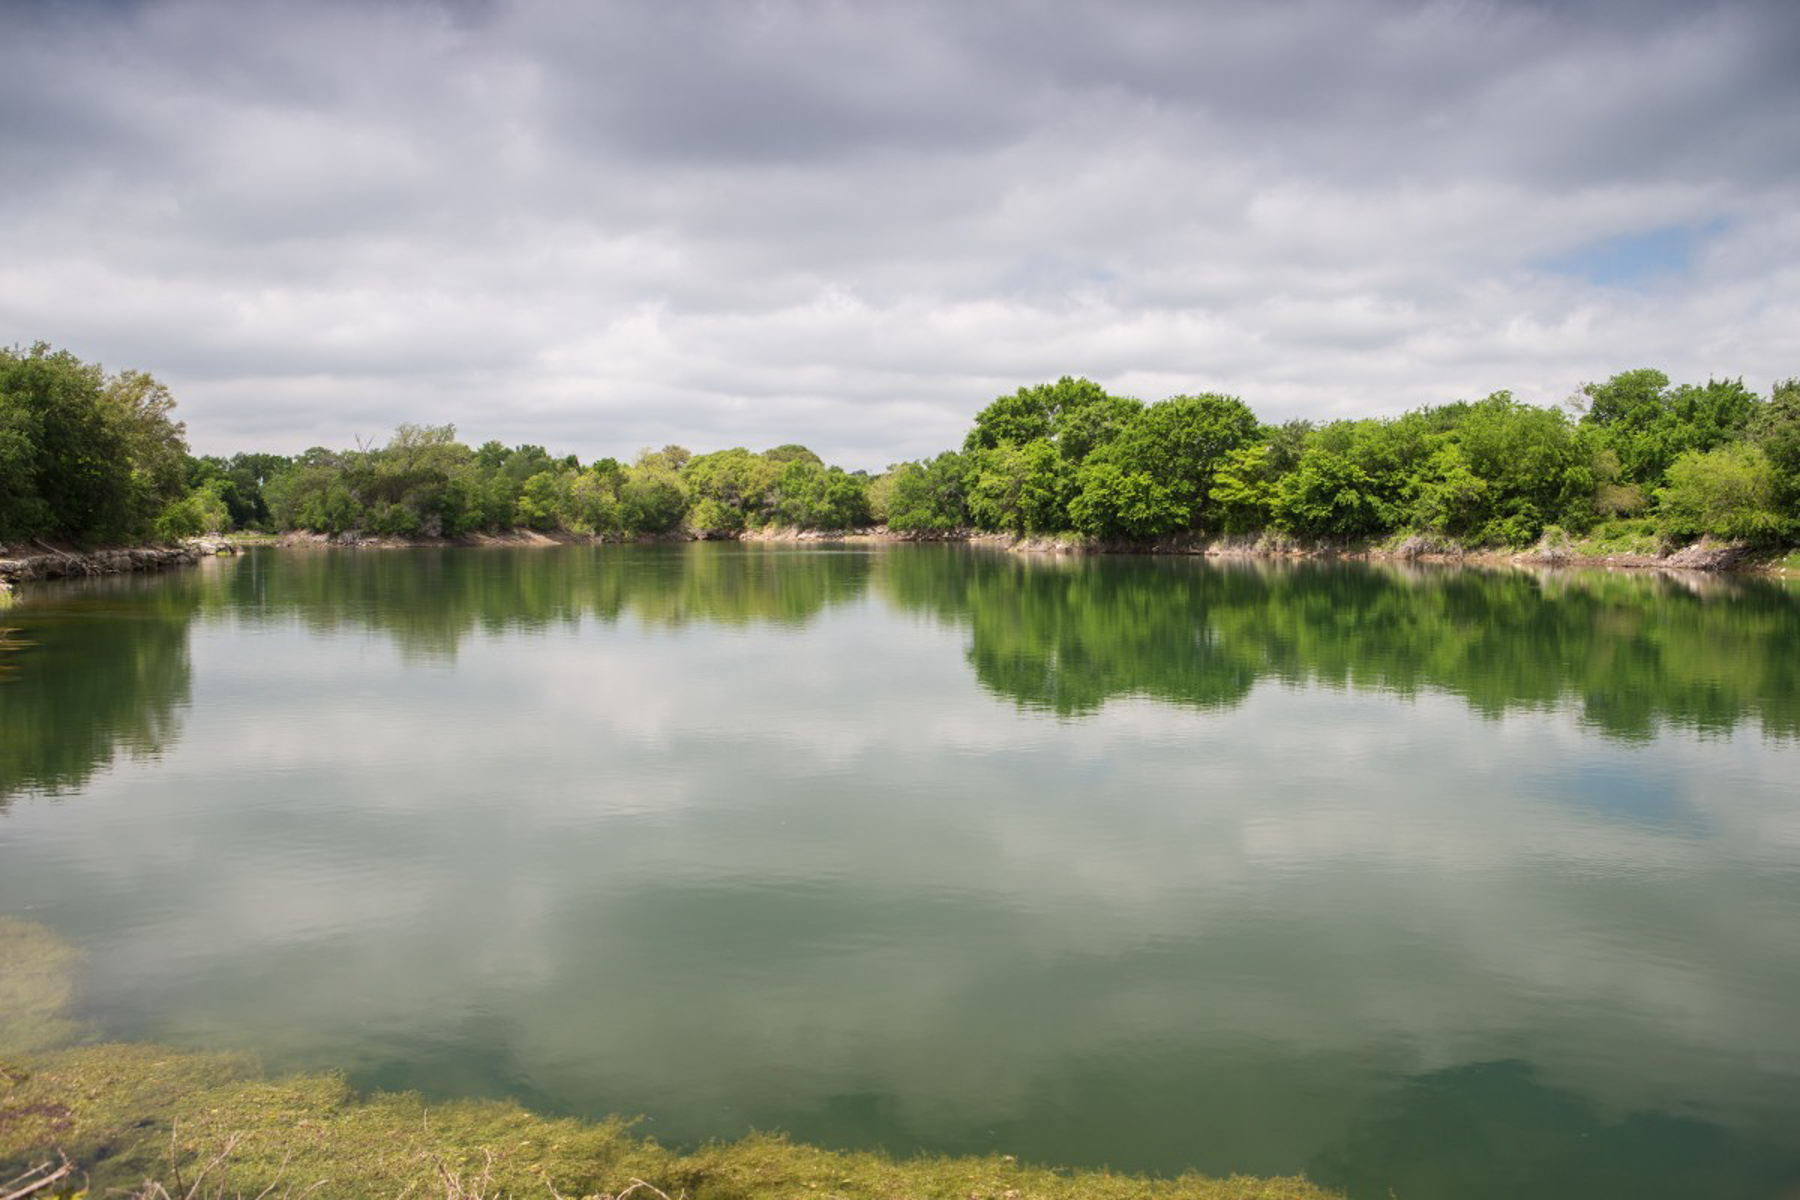 Land for Sale at Hall Lake Ranch 17209 N. Hwy 6 Valley Mills, Texas 76689 United States